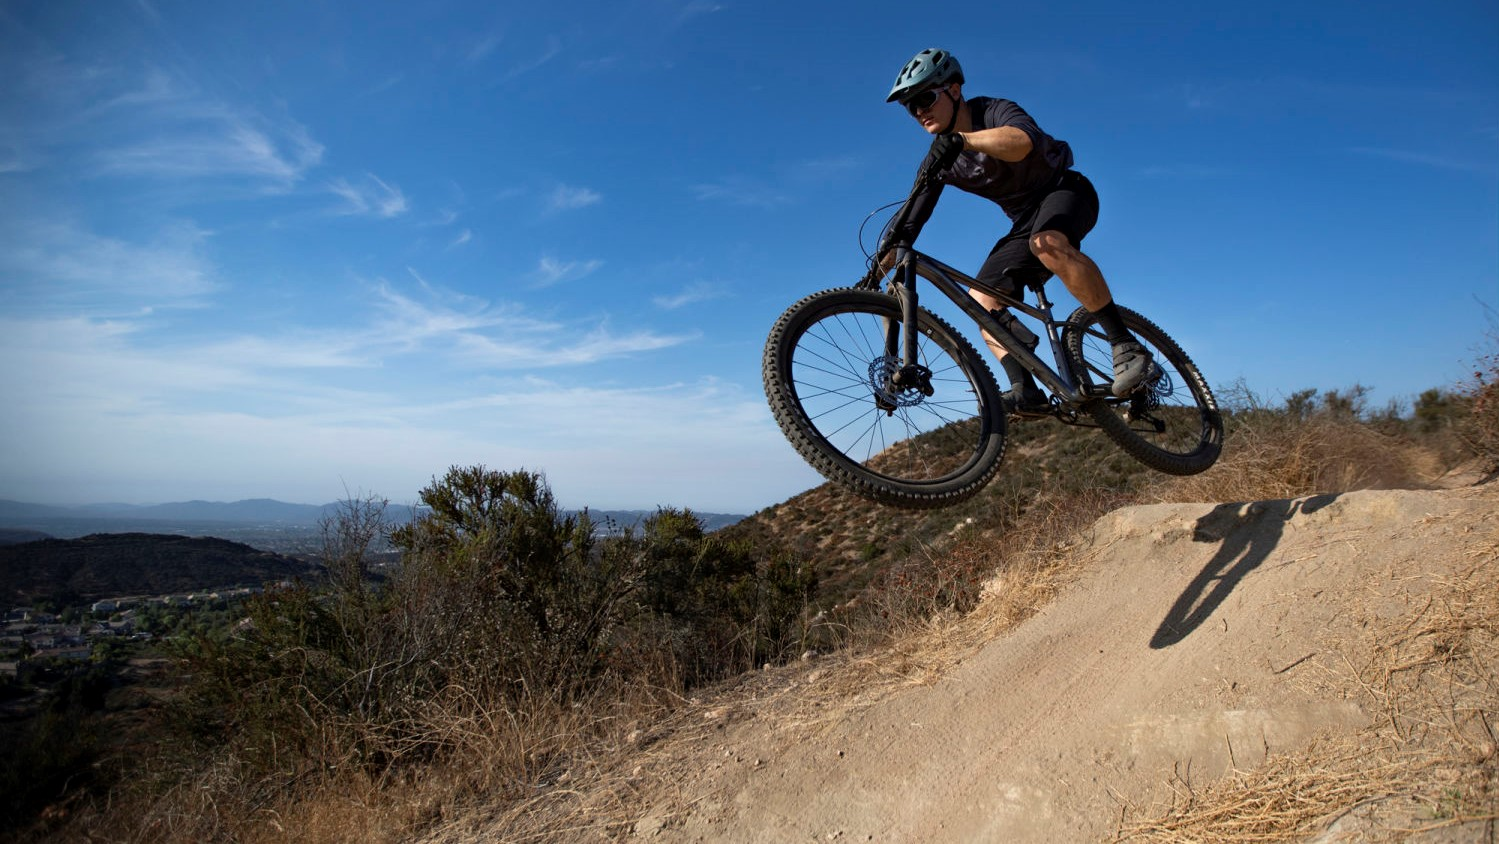 Getting air or descending steep trails at speed is where a mountain bike comes into its own